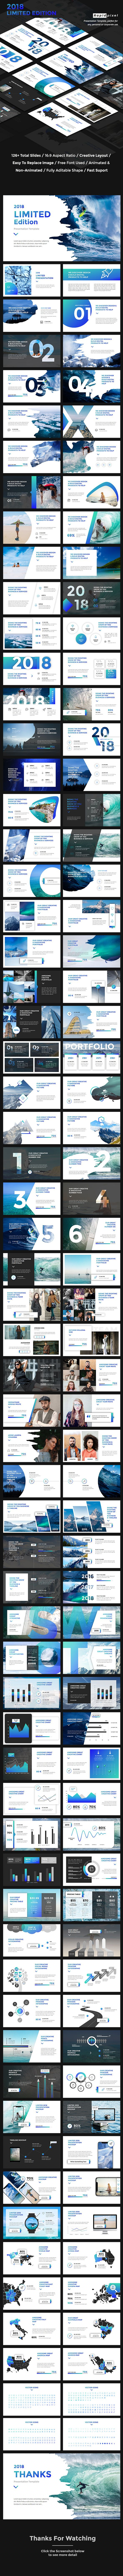 2018 Limited Edition PowerPoint - PowerPoint Templates Presentation Templates